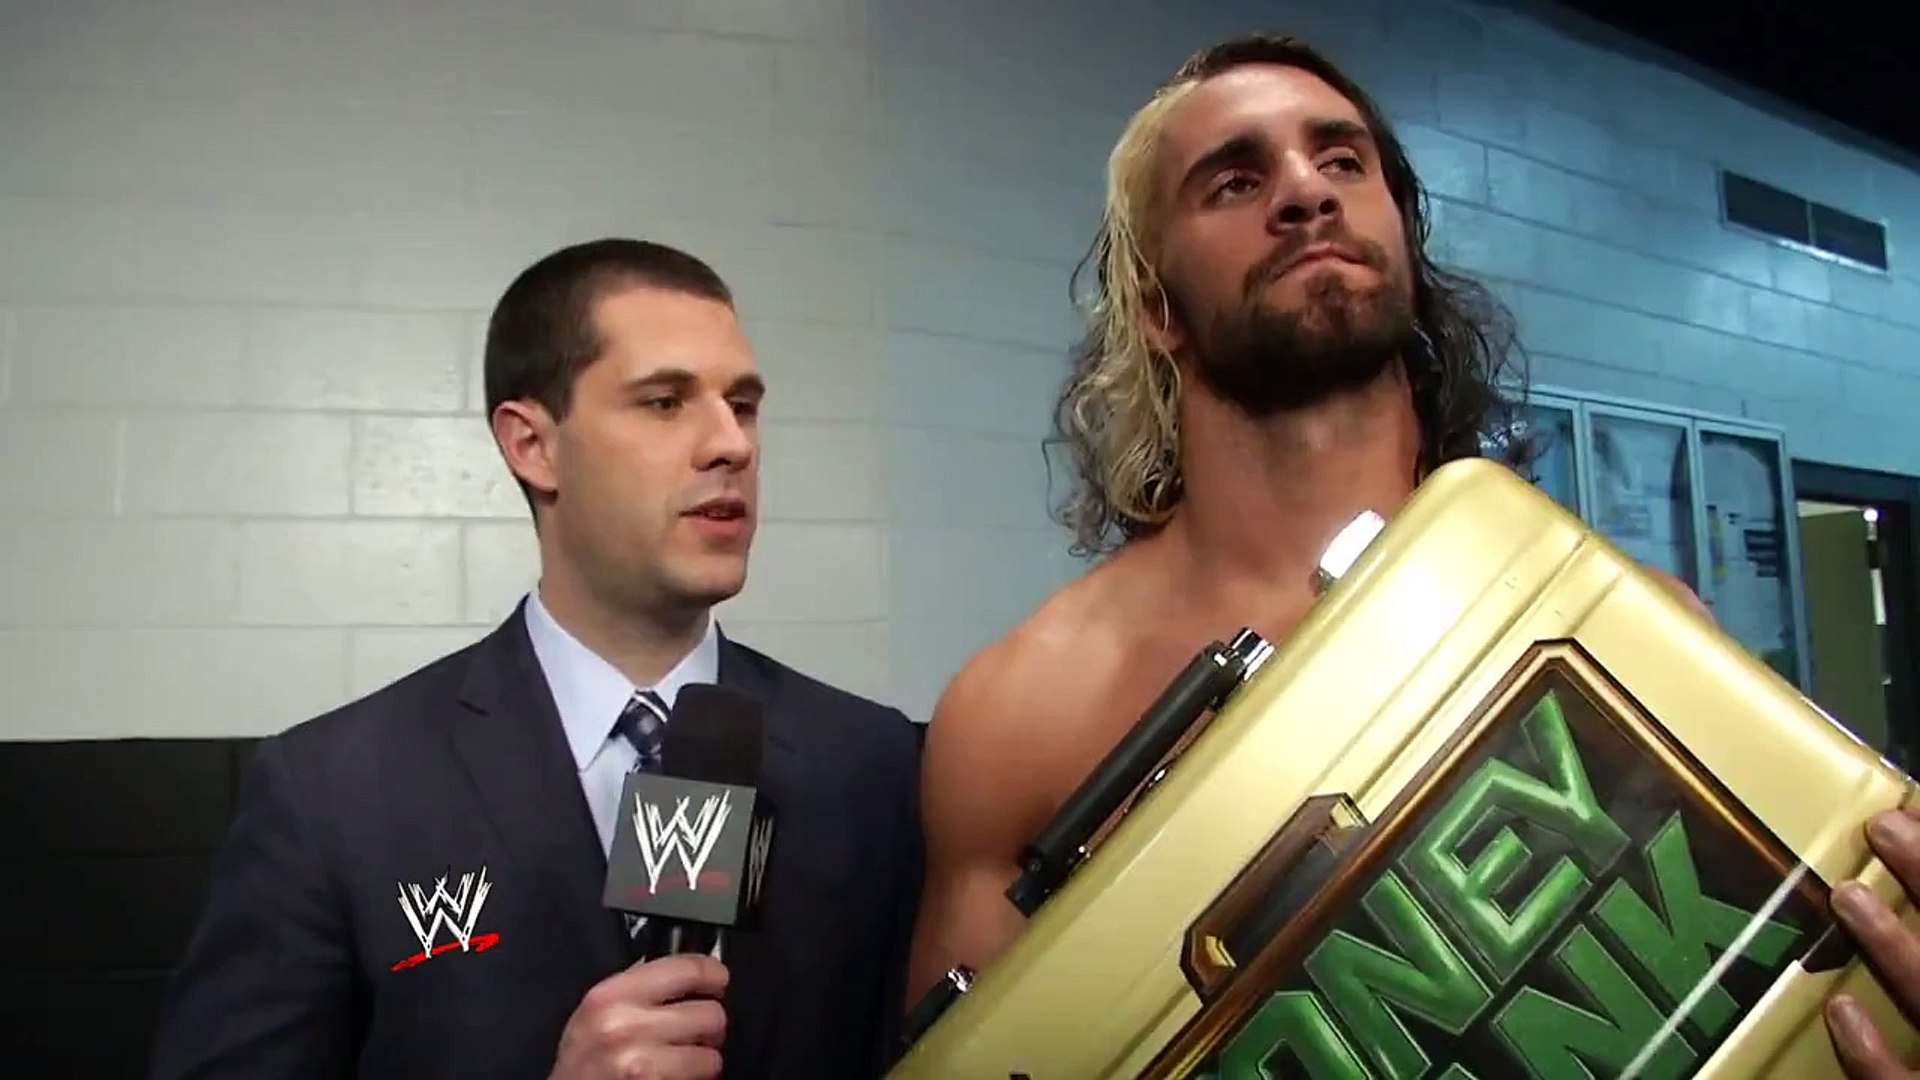 GIVE IT UP FOR THE NEW MR. MONEY IN THE BANK